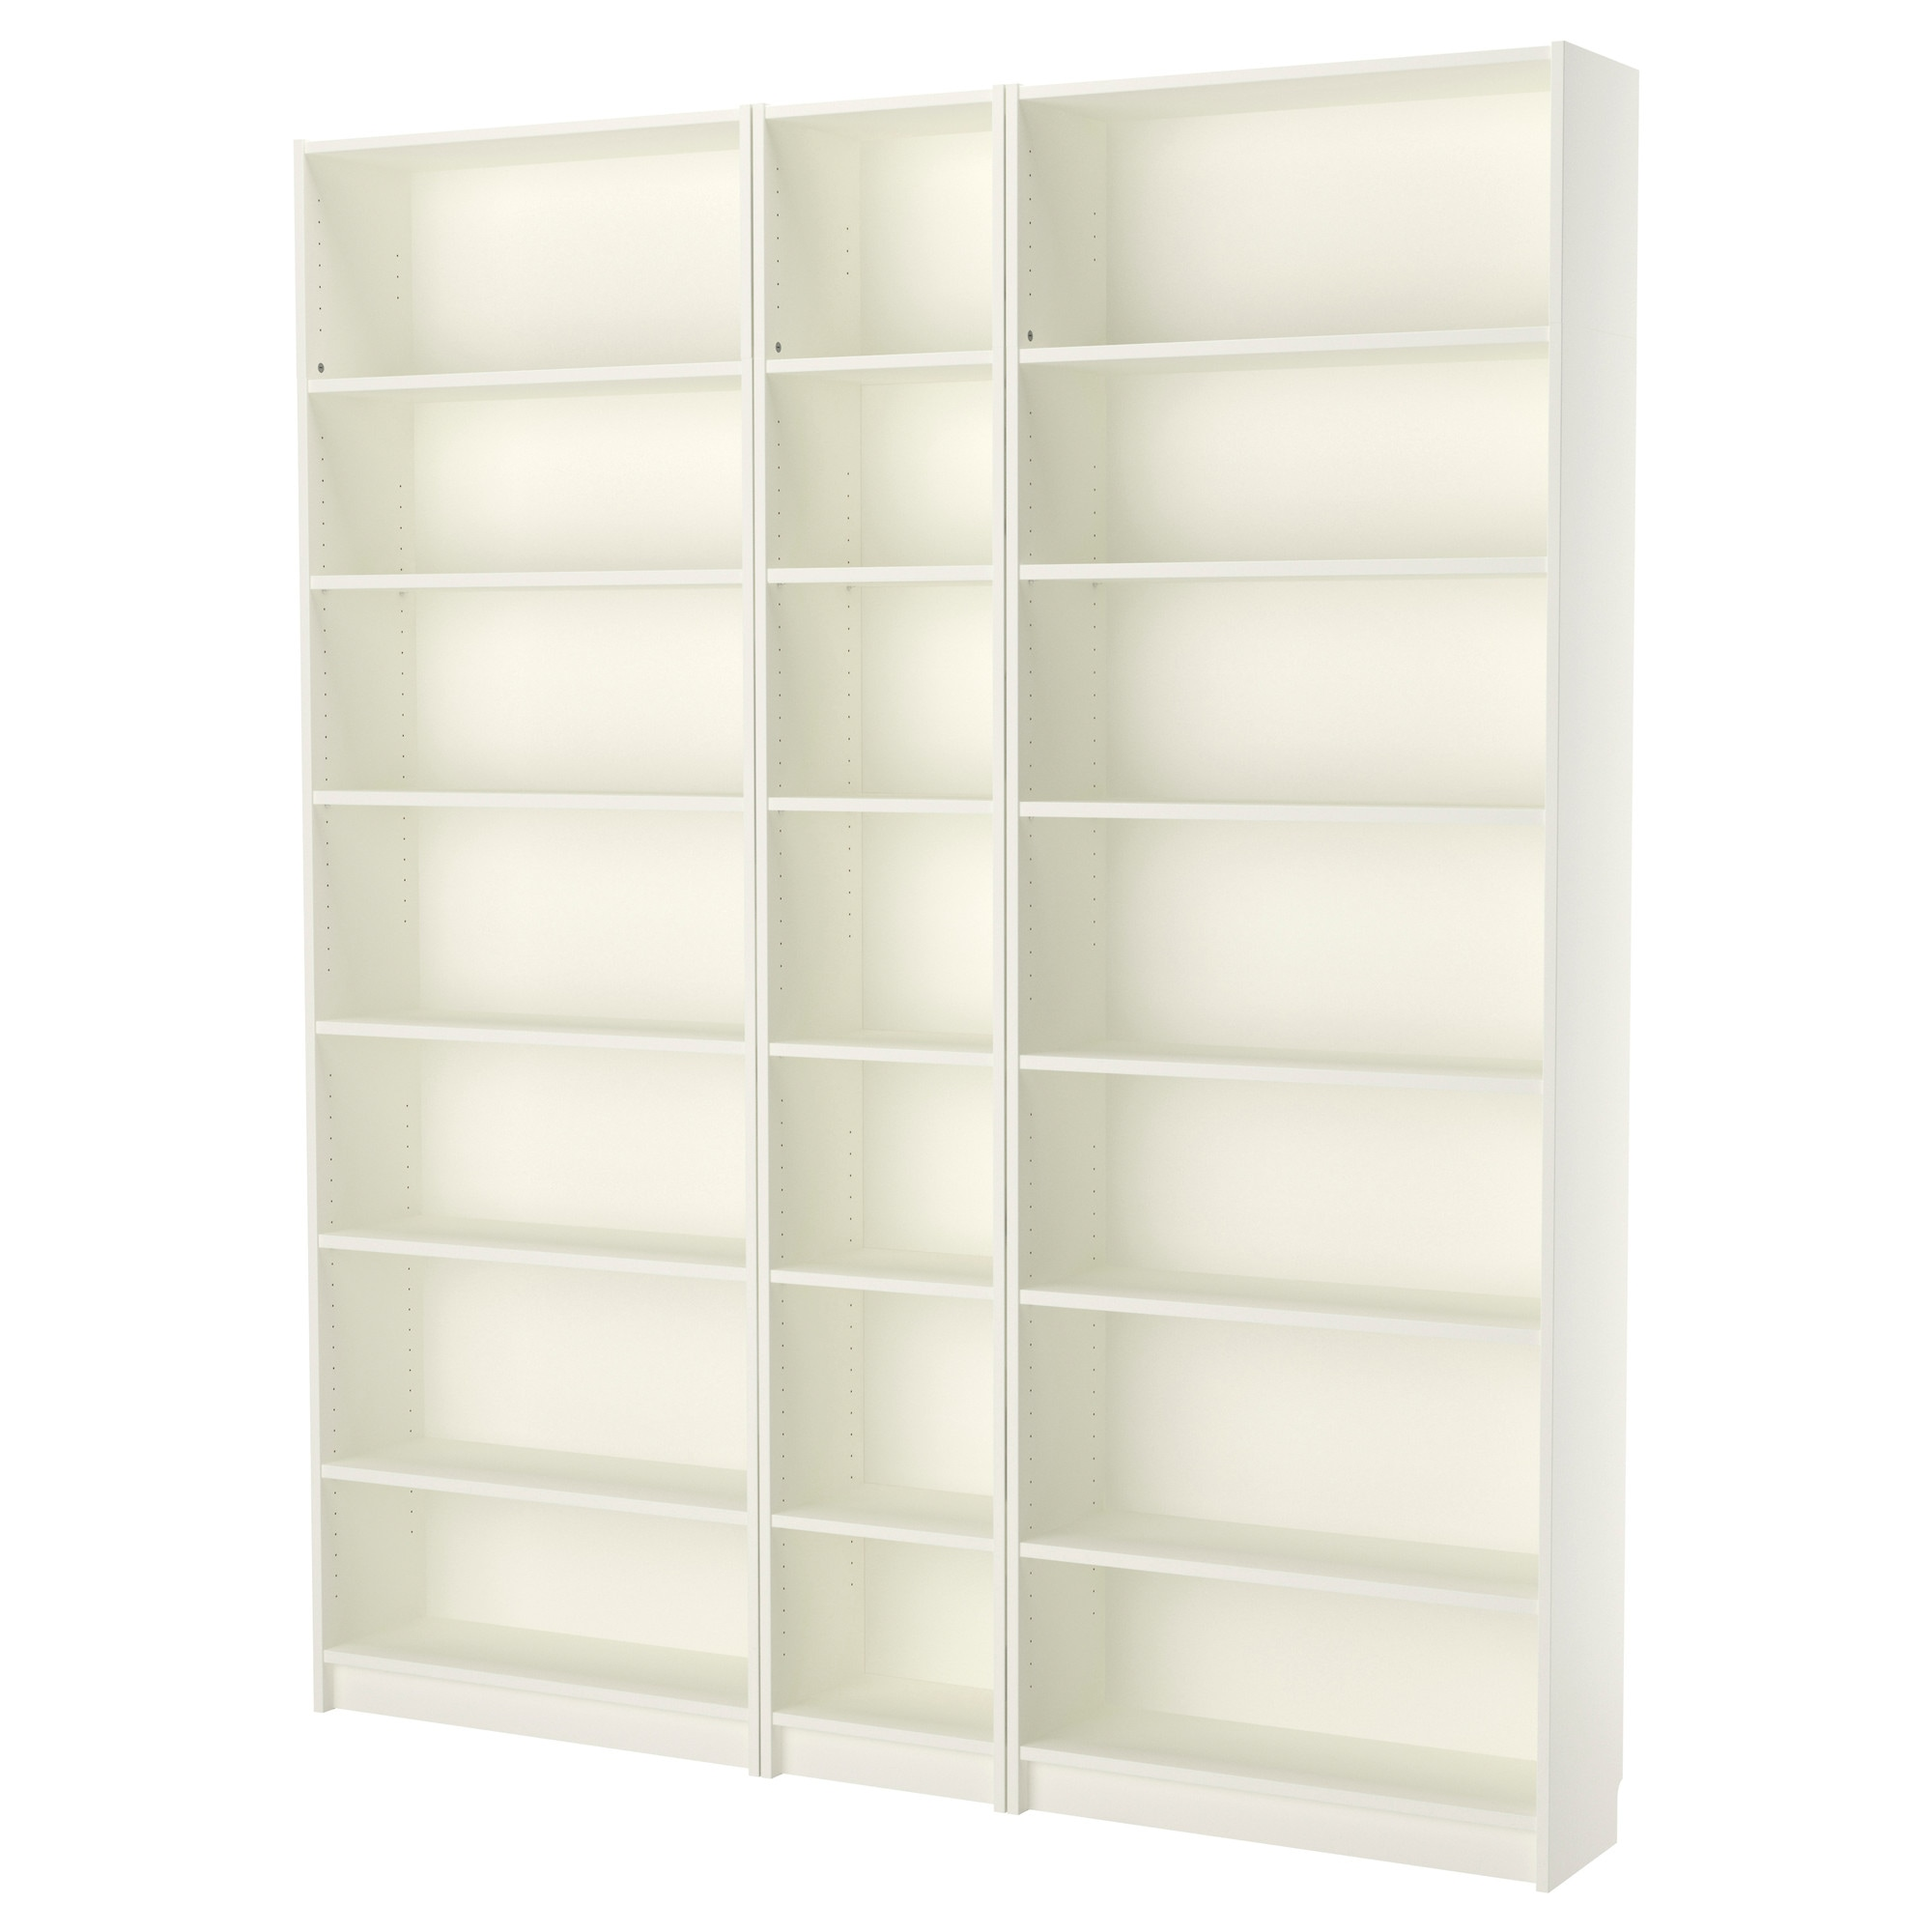 Billy Bookcase White Width 78 3 4 Depth 11 Height